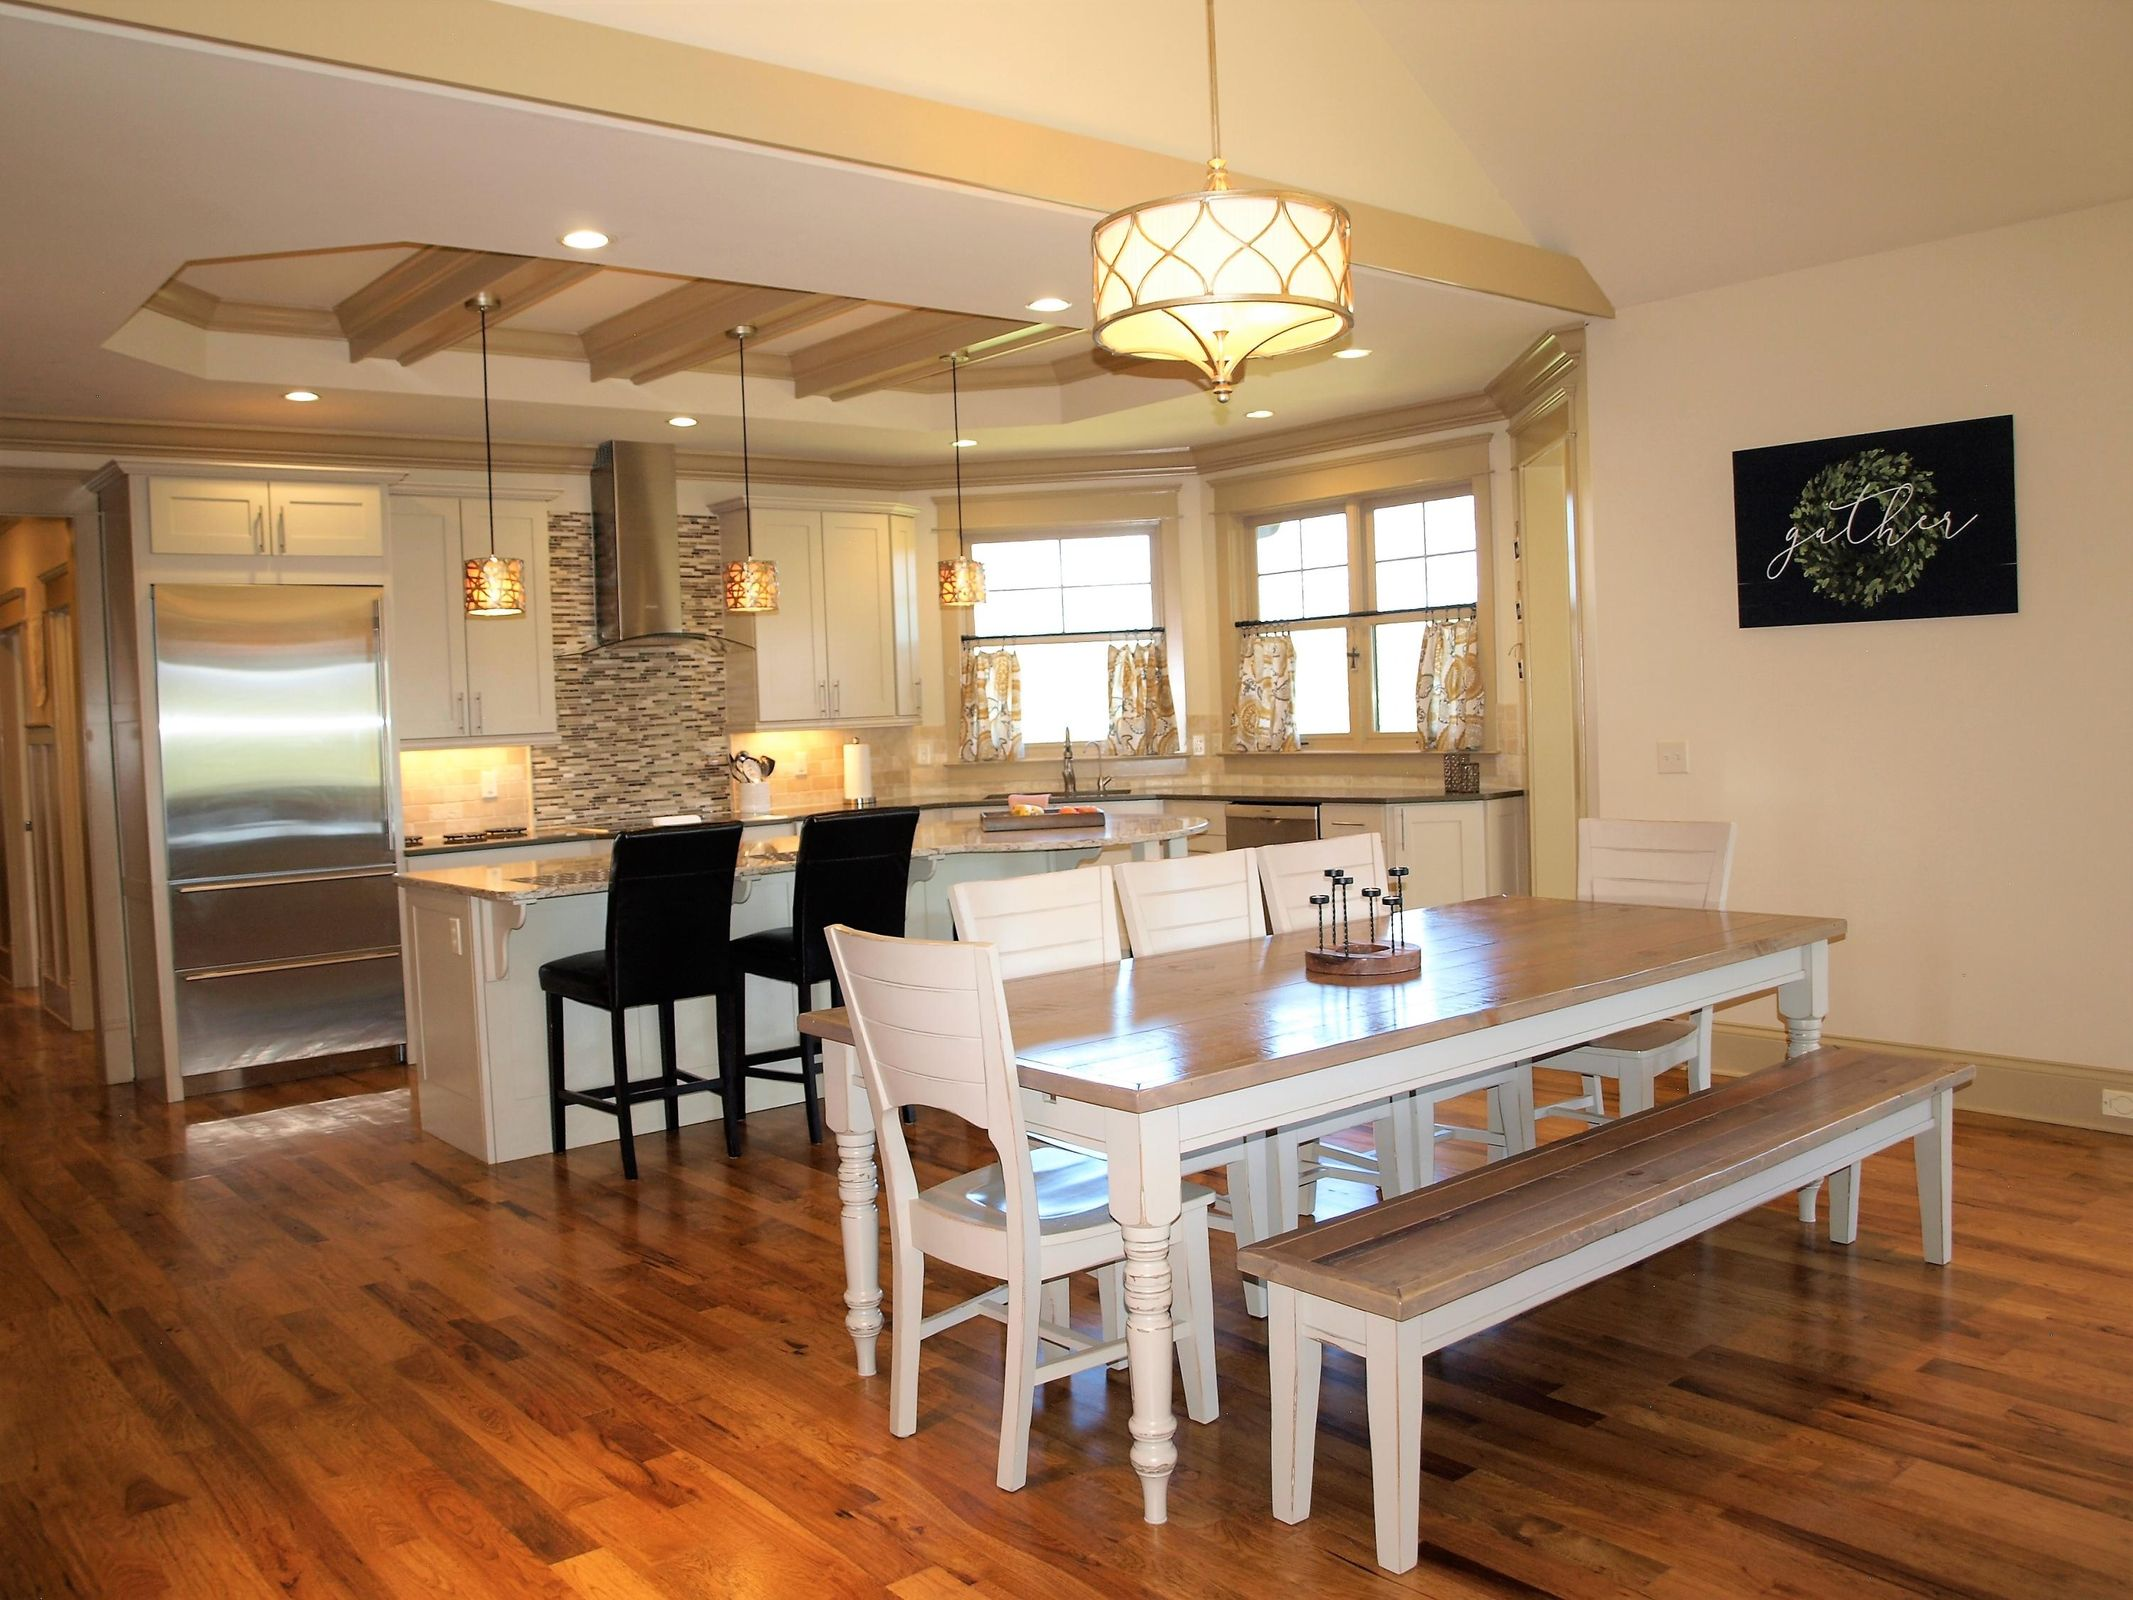 Kitchen and Dining all open concept